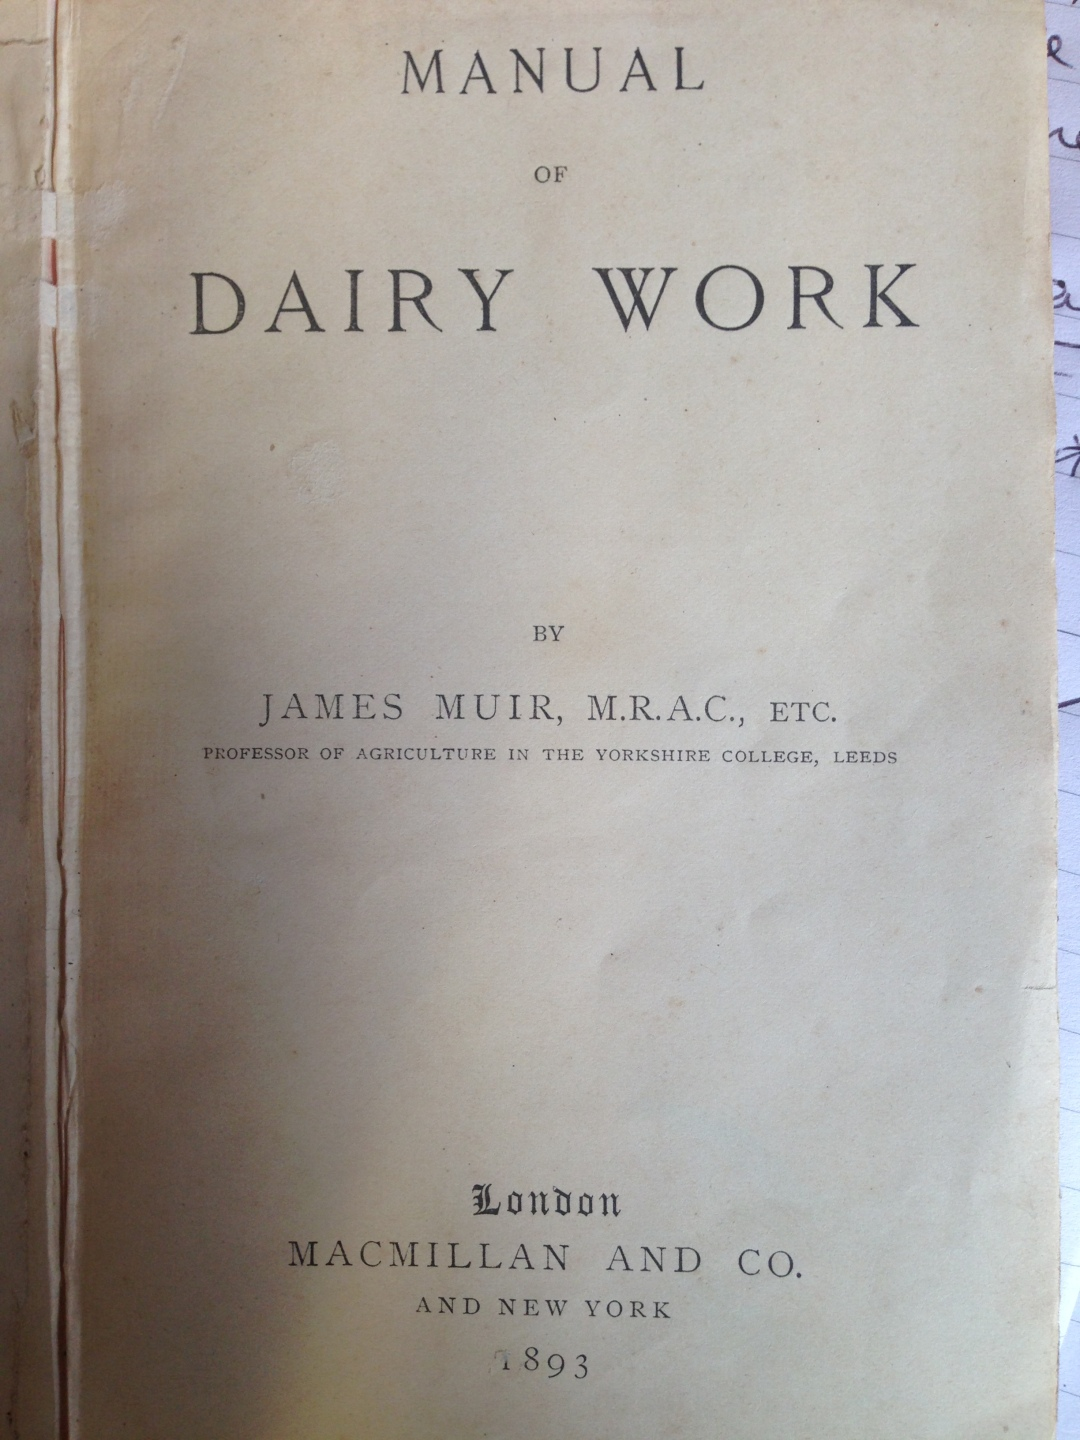 dairy-book-1st-page